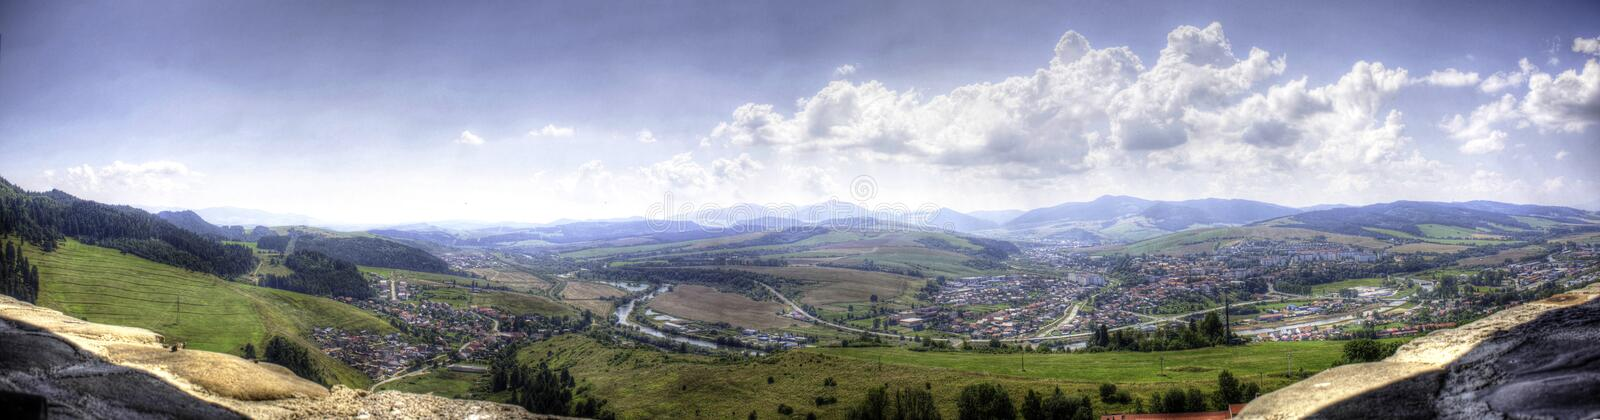 Beutiful view from castle tower of valley. Fourth stock images